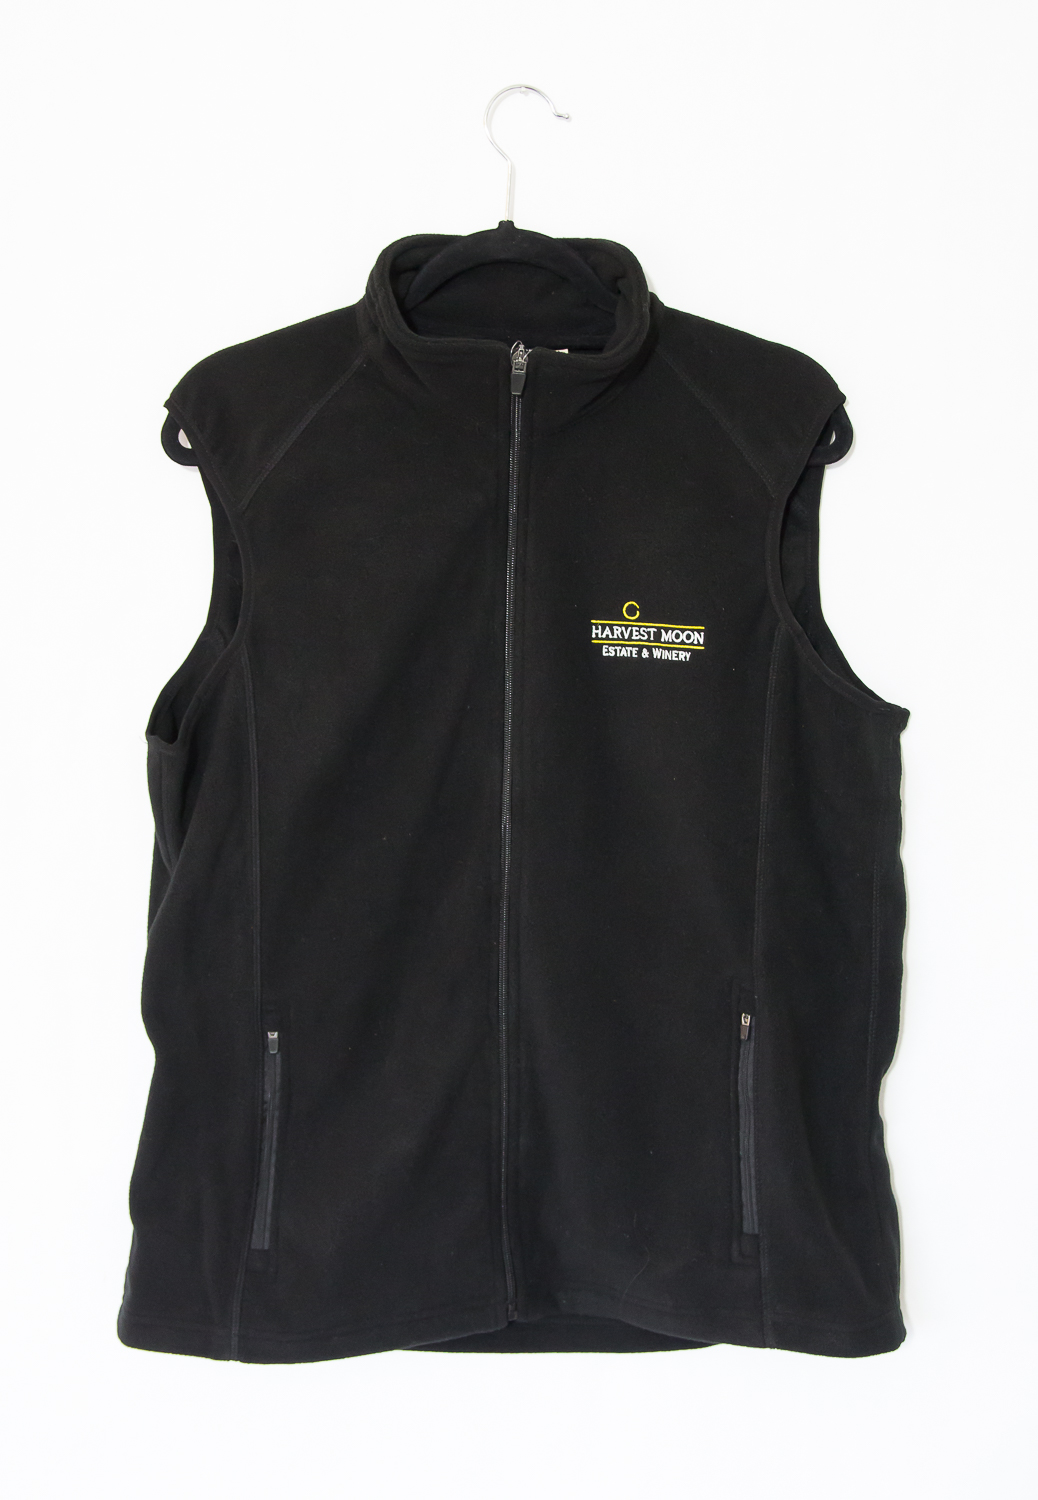 Clothing - Women's Black Vest